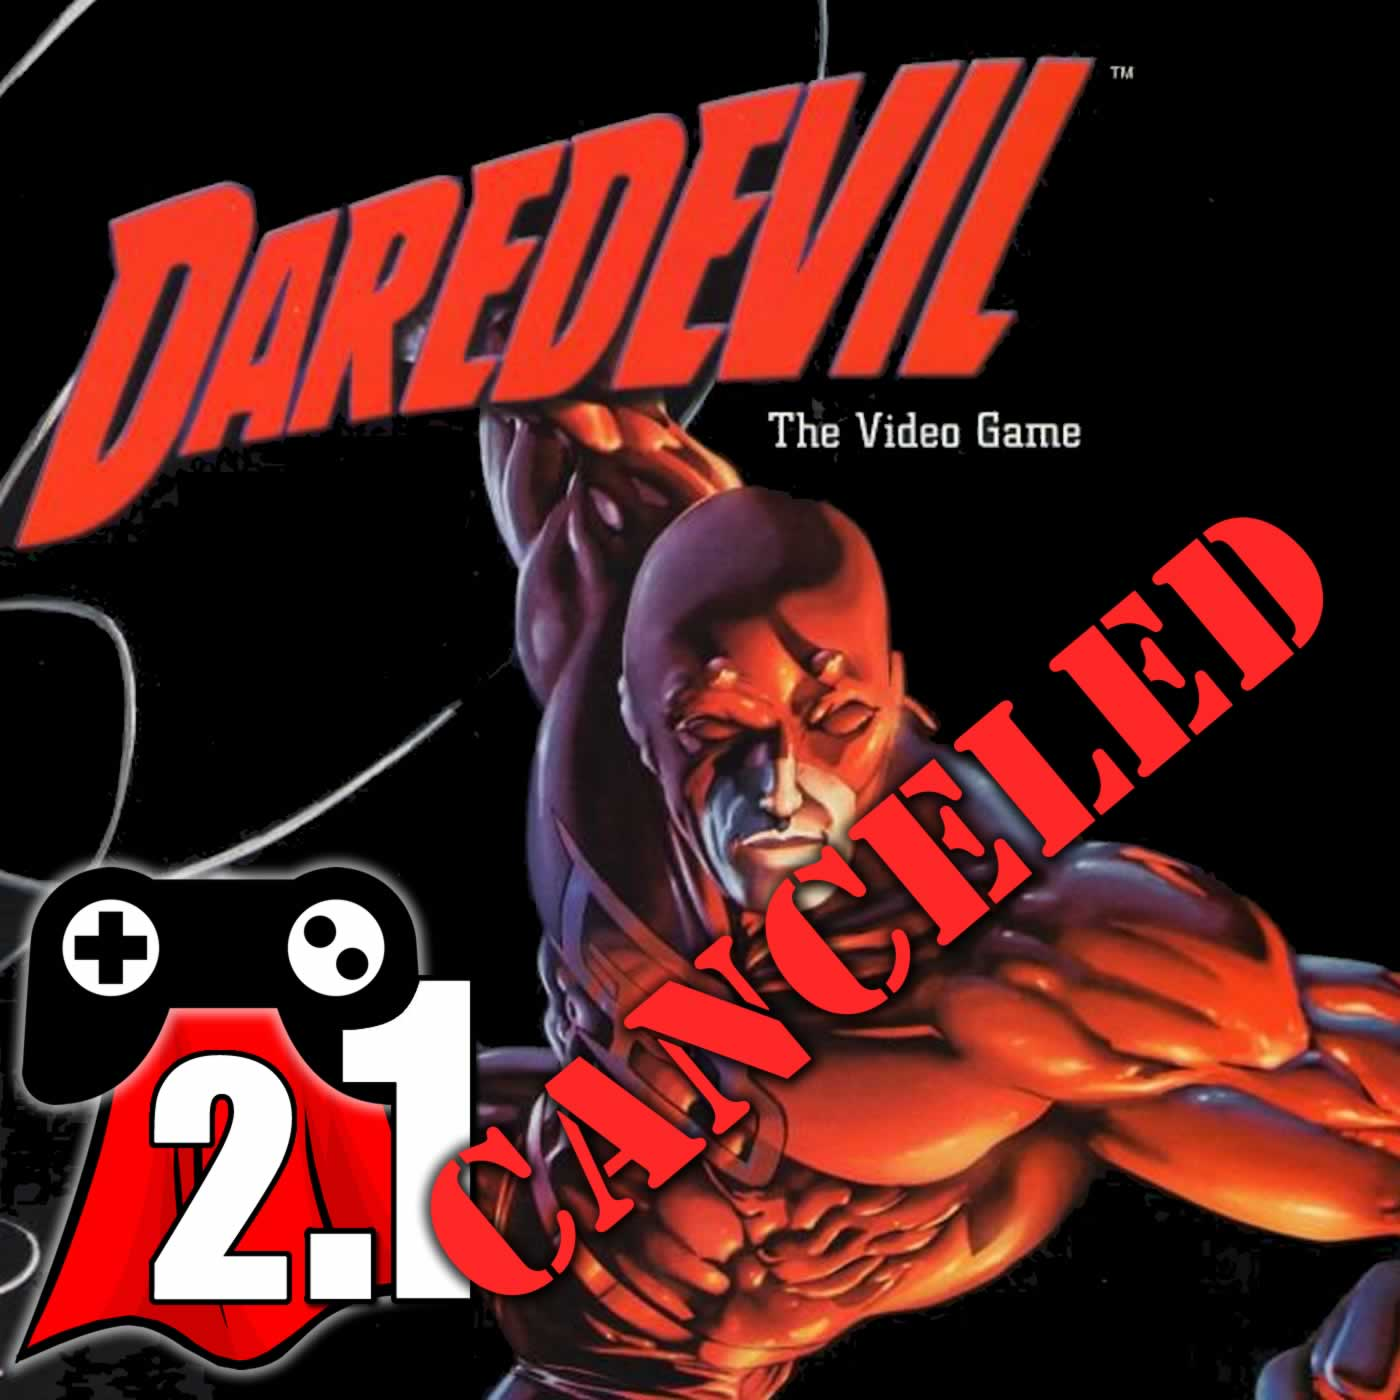 Issue #2.1: Daredevil - The Canceled Video Game